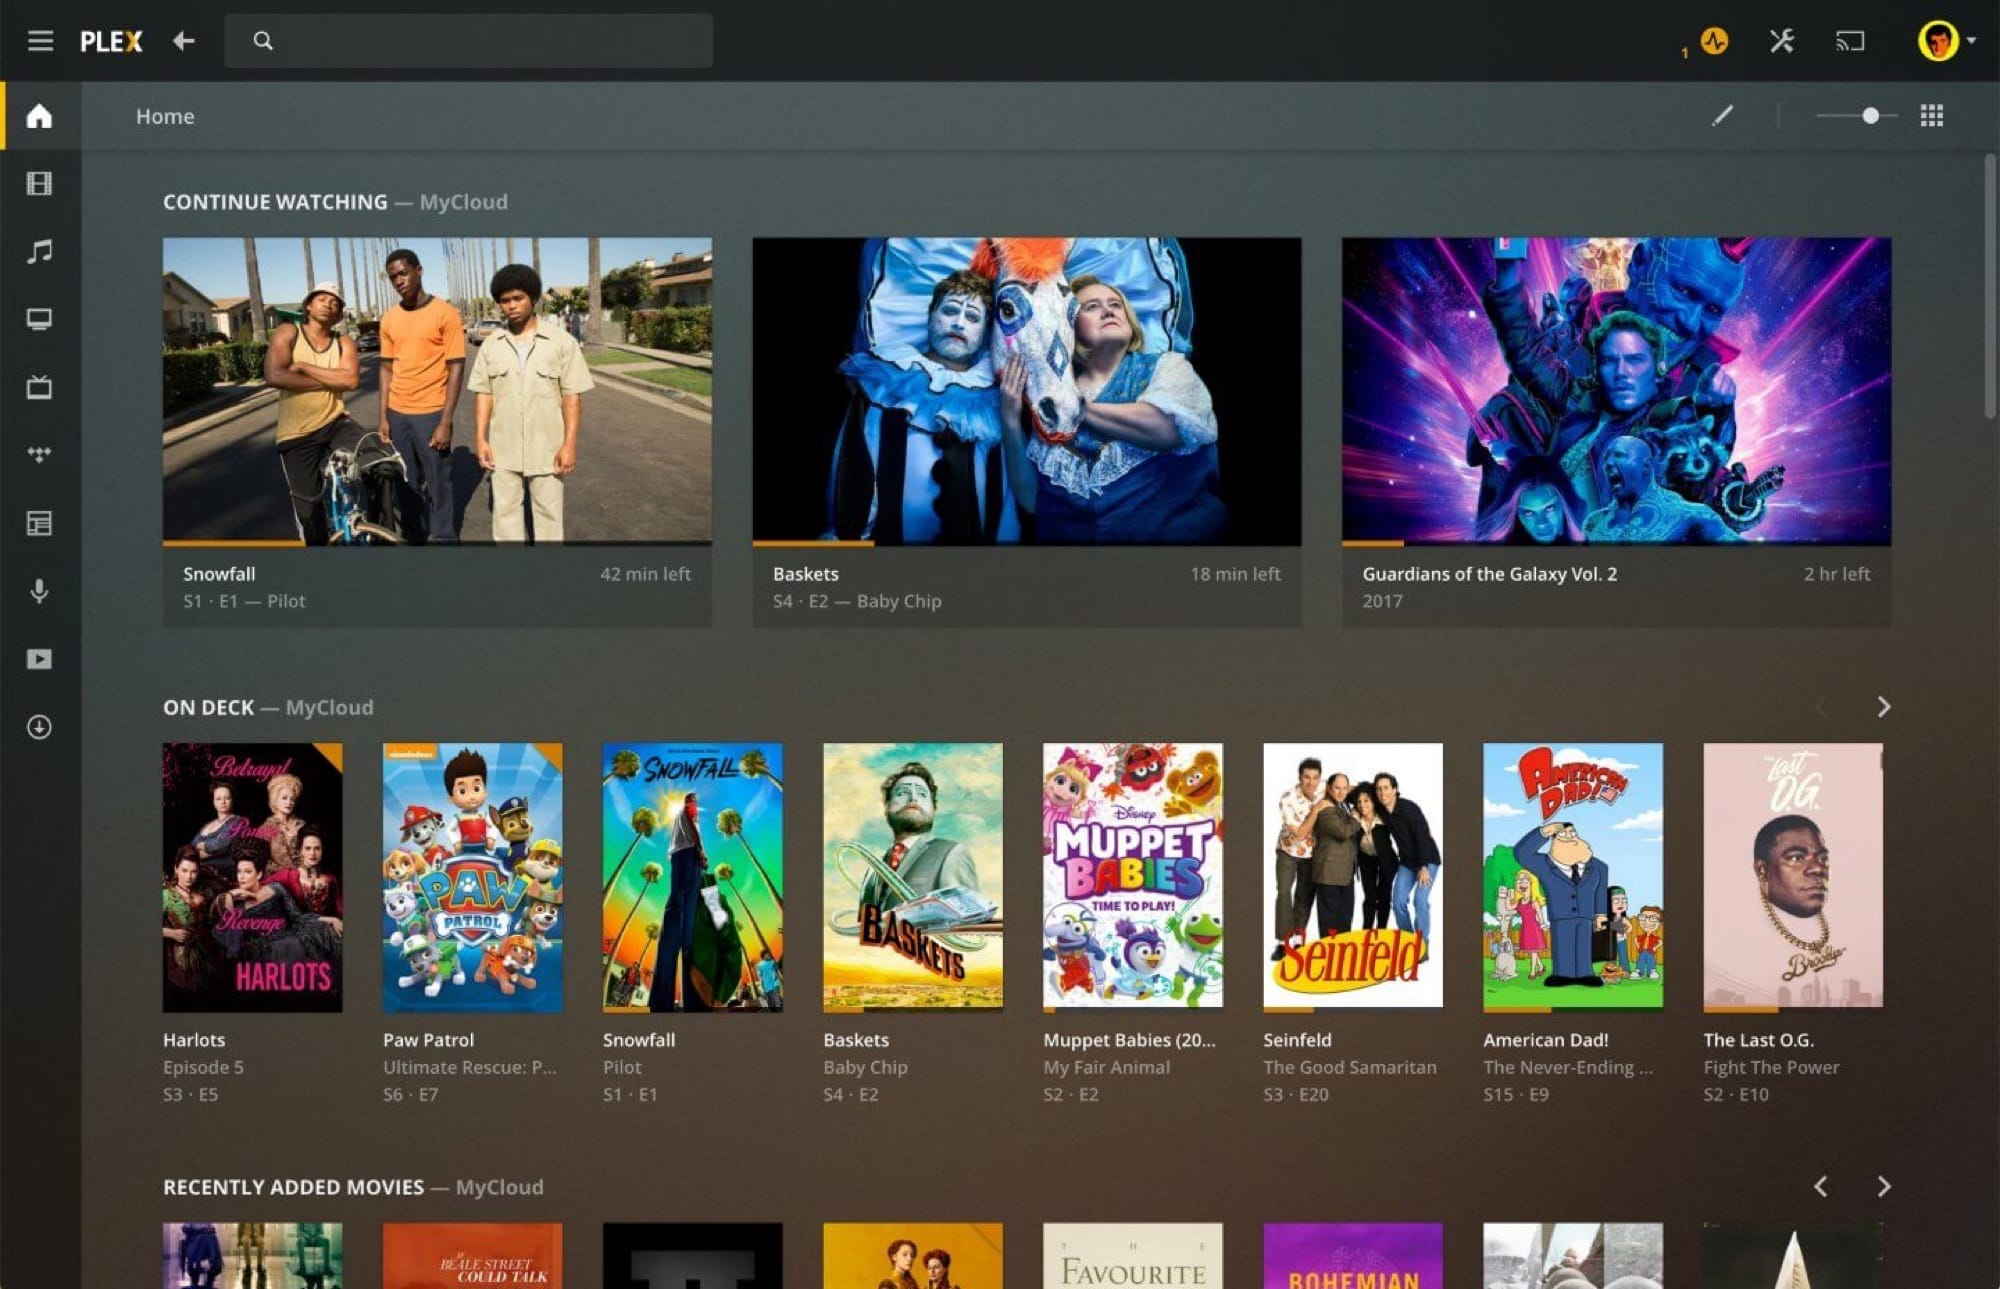 A real Plex app for the Mac.